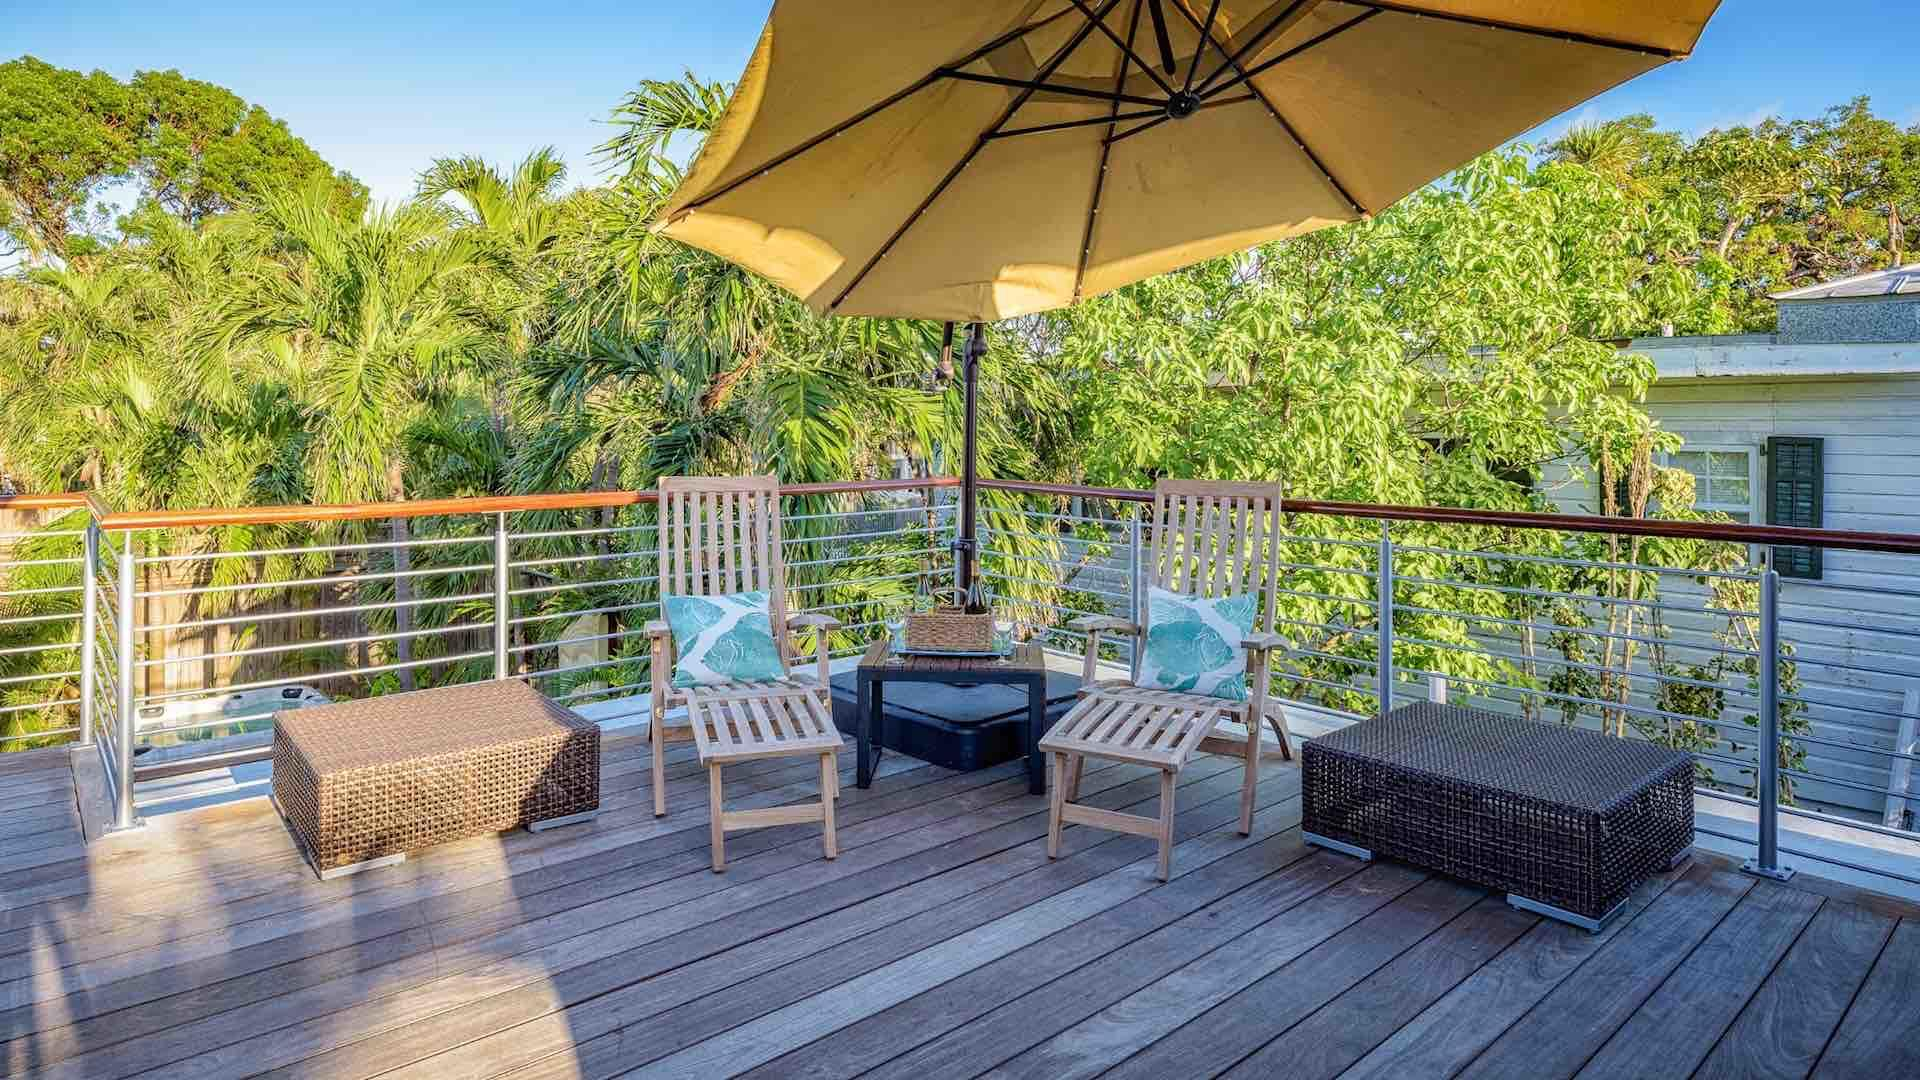 The rooftop deck has chaise lounges and an umbrella...